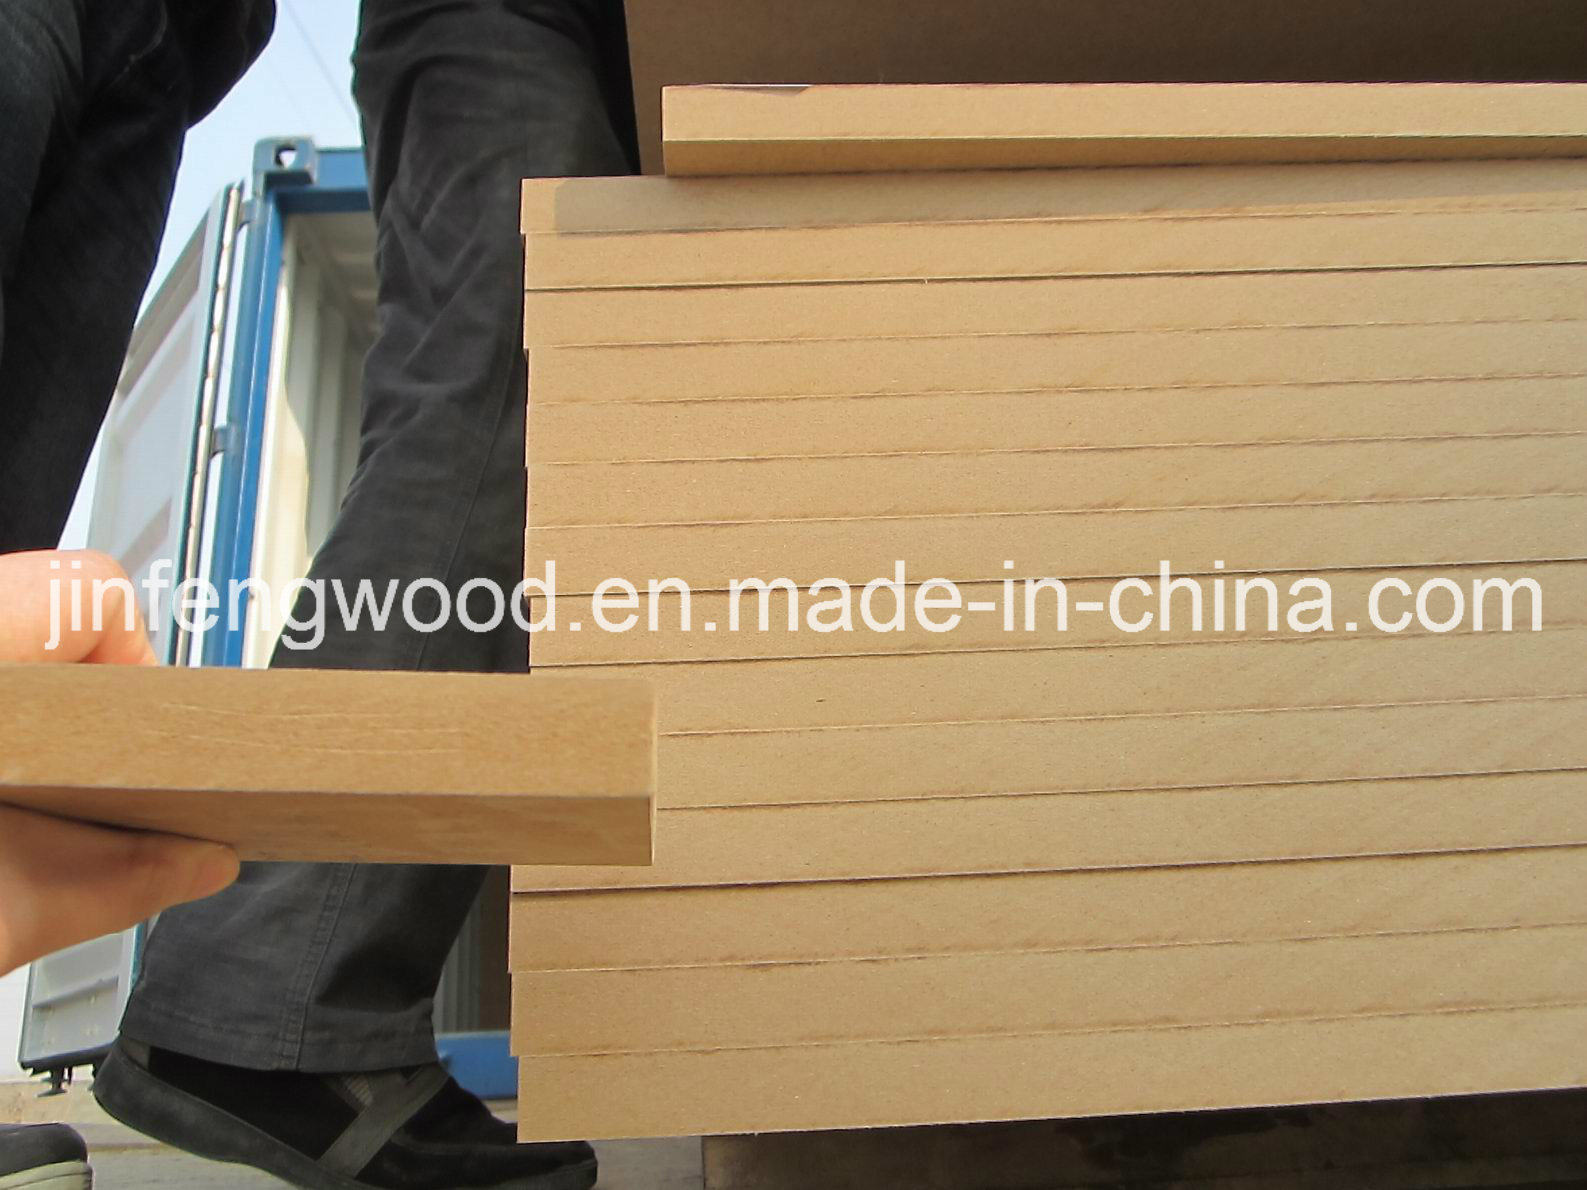 Plain MDF/Sanding MDF Medium Density Fiberboard Raw Plain MDF